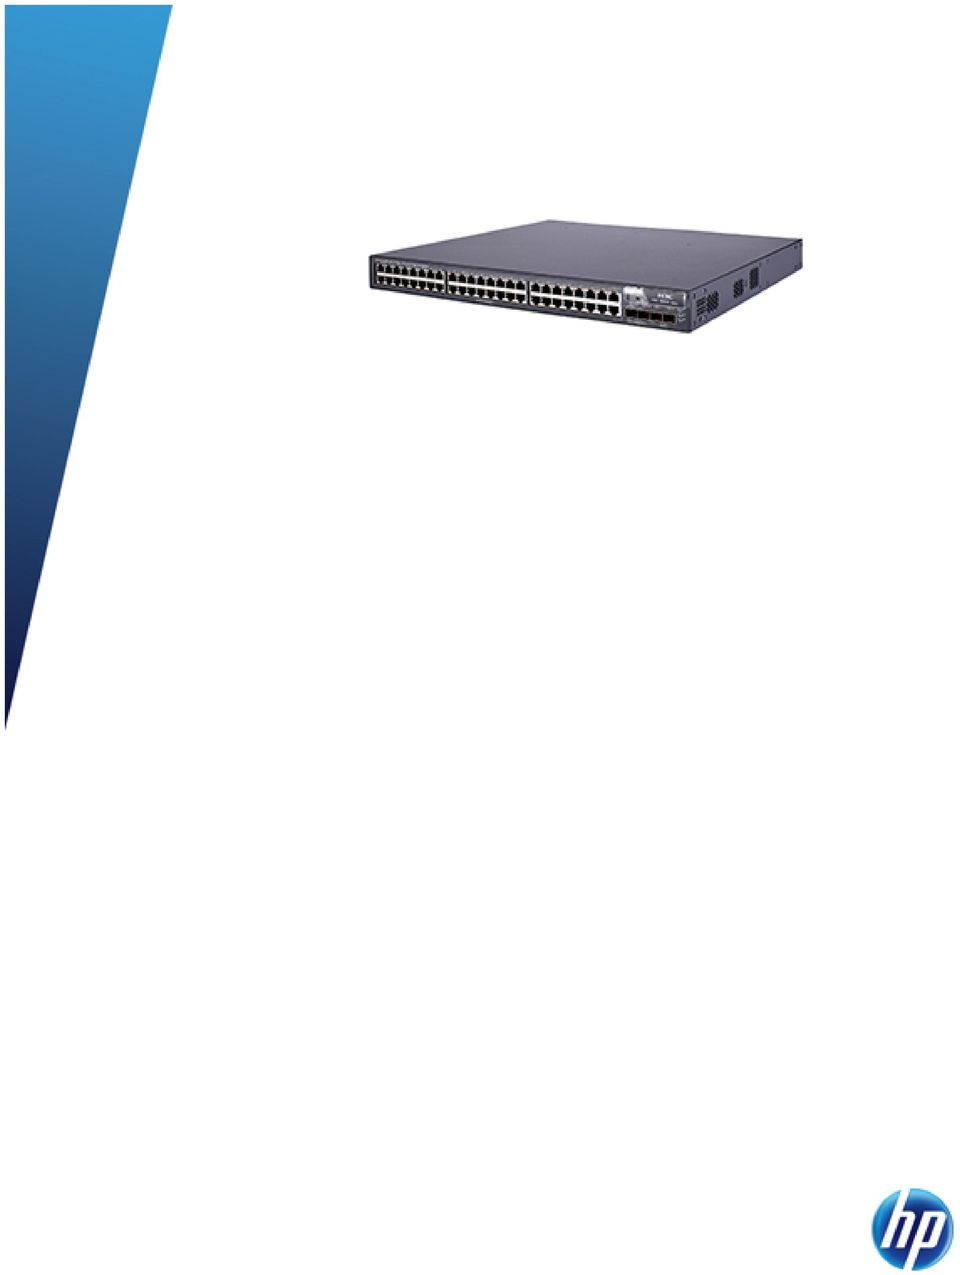 SFP+ ports for the most demanding enterprise network environments.